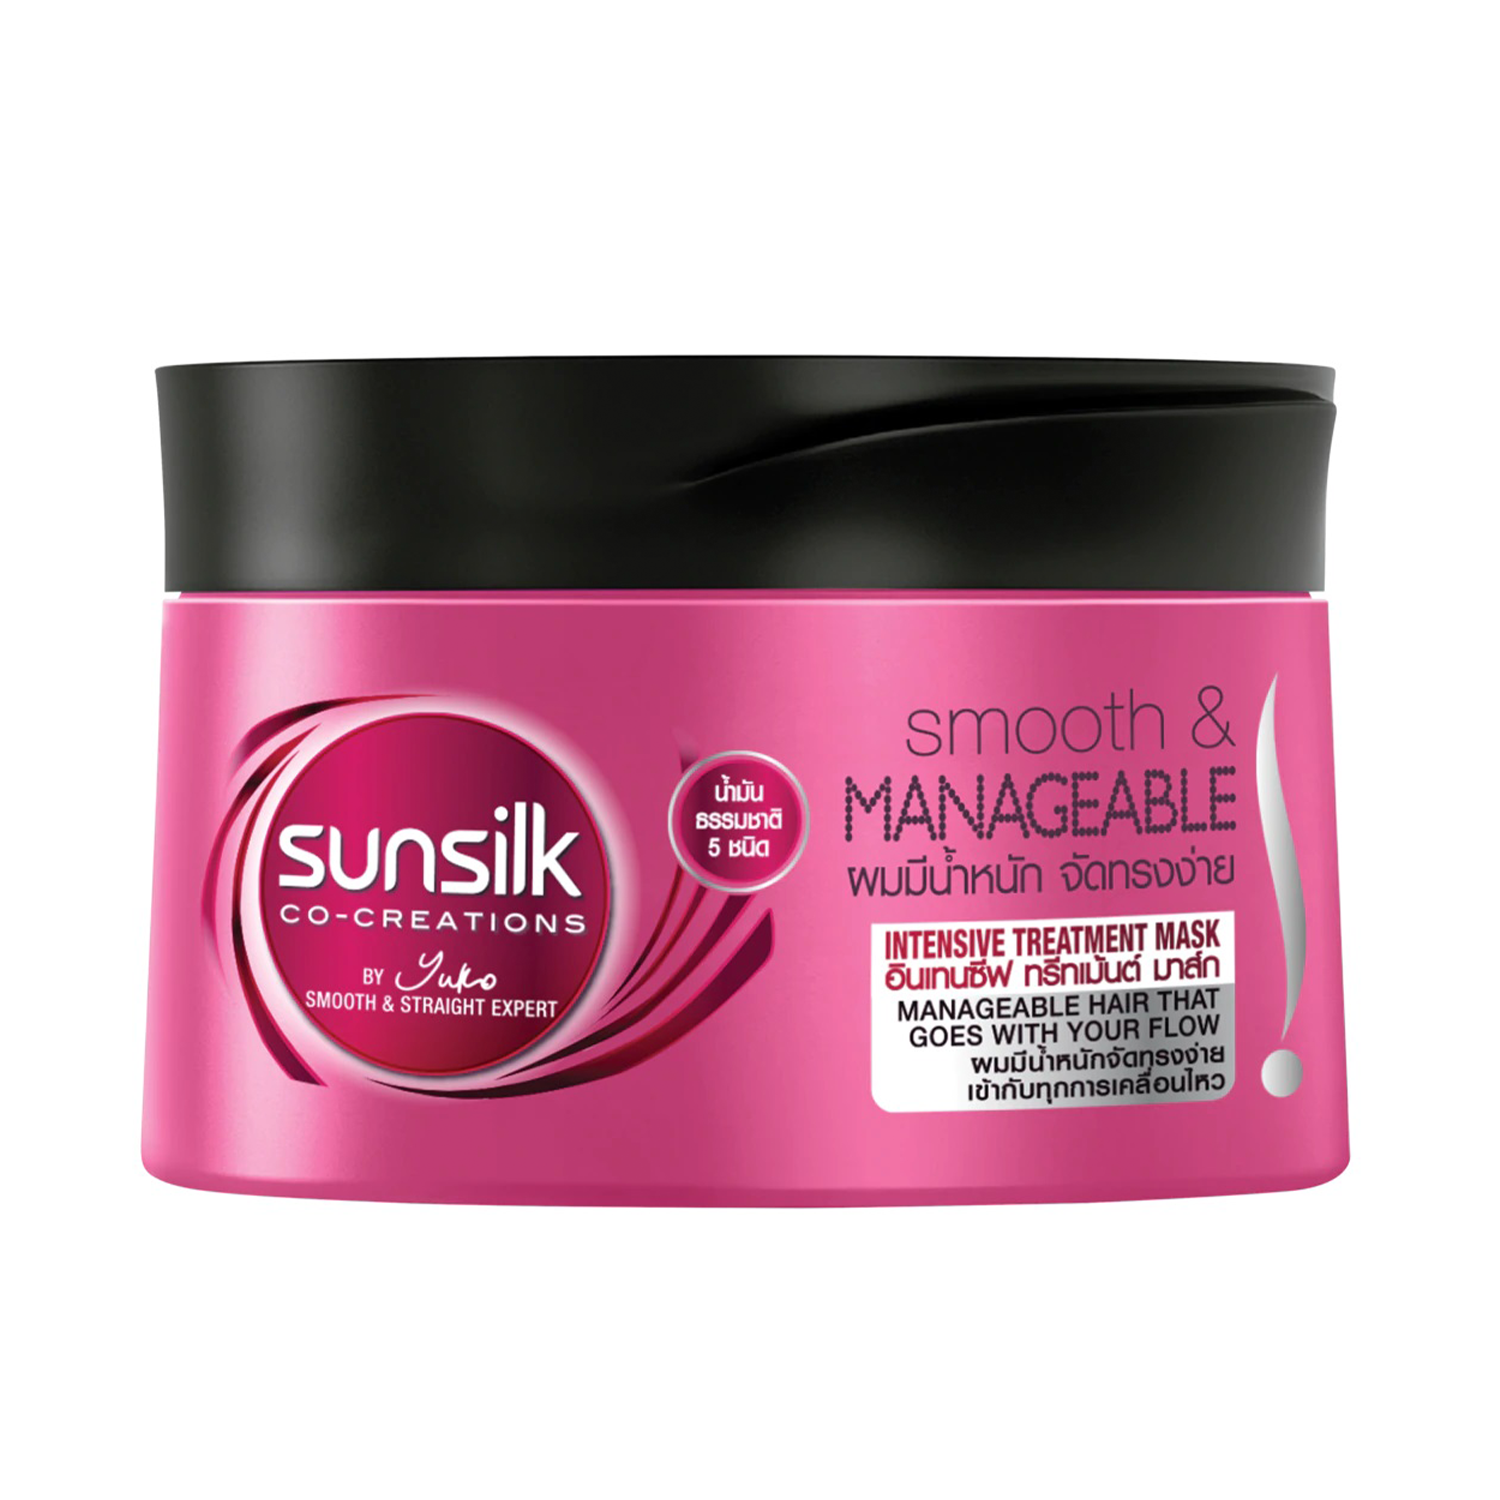 Sunsilk Treatment Mask Smooth&Manageable 200Ml